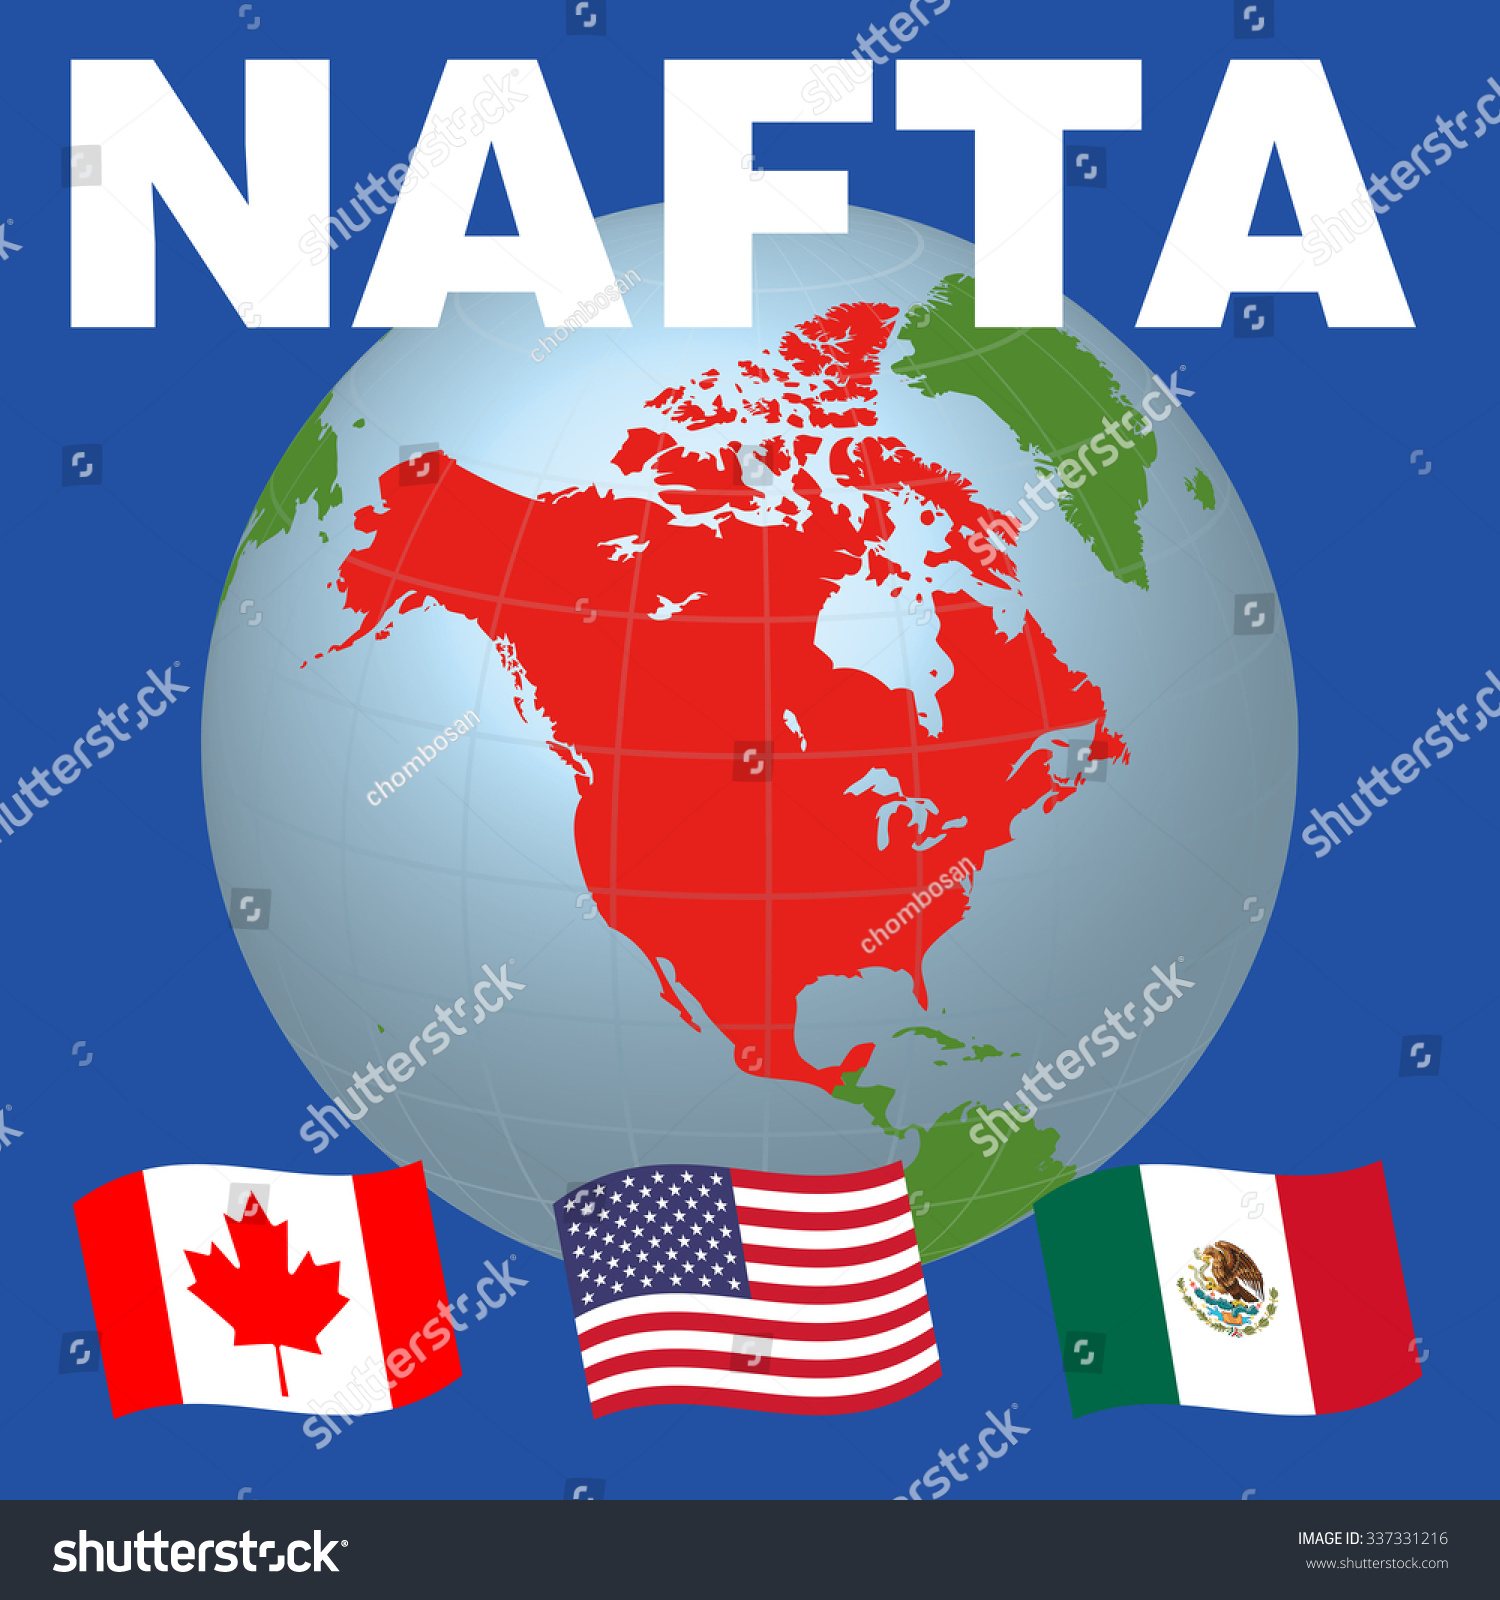 Nafta North American Free Trade Agreement Stock Vector 337331216